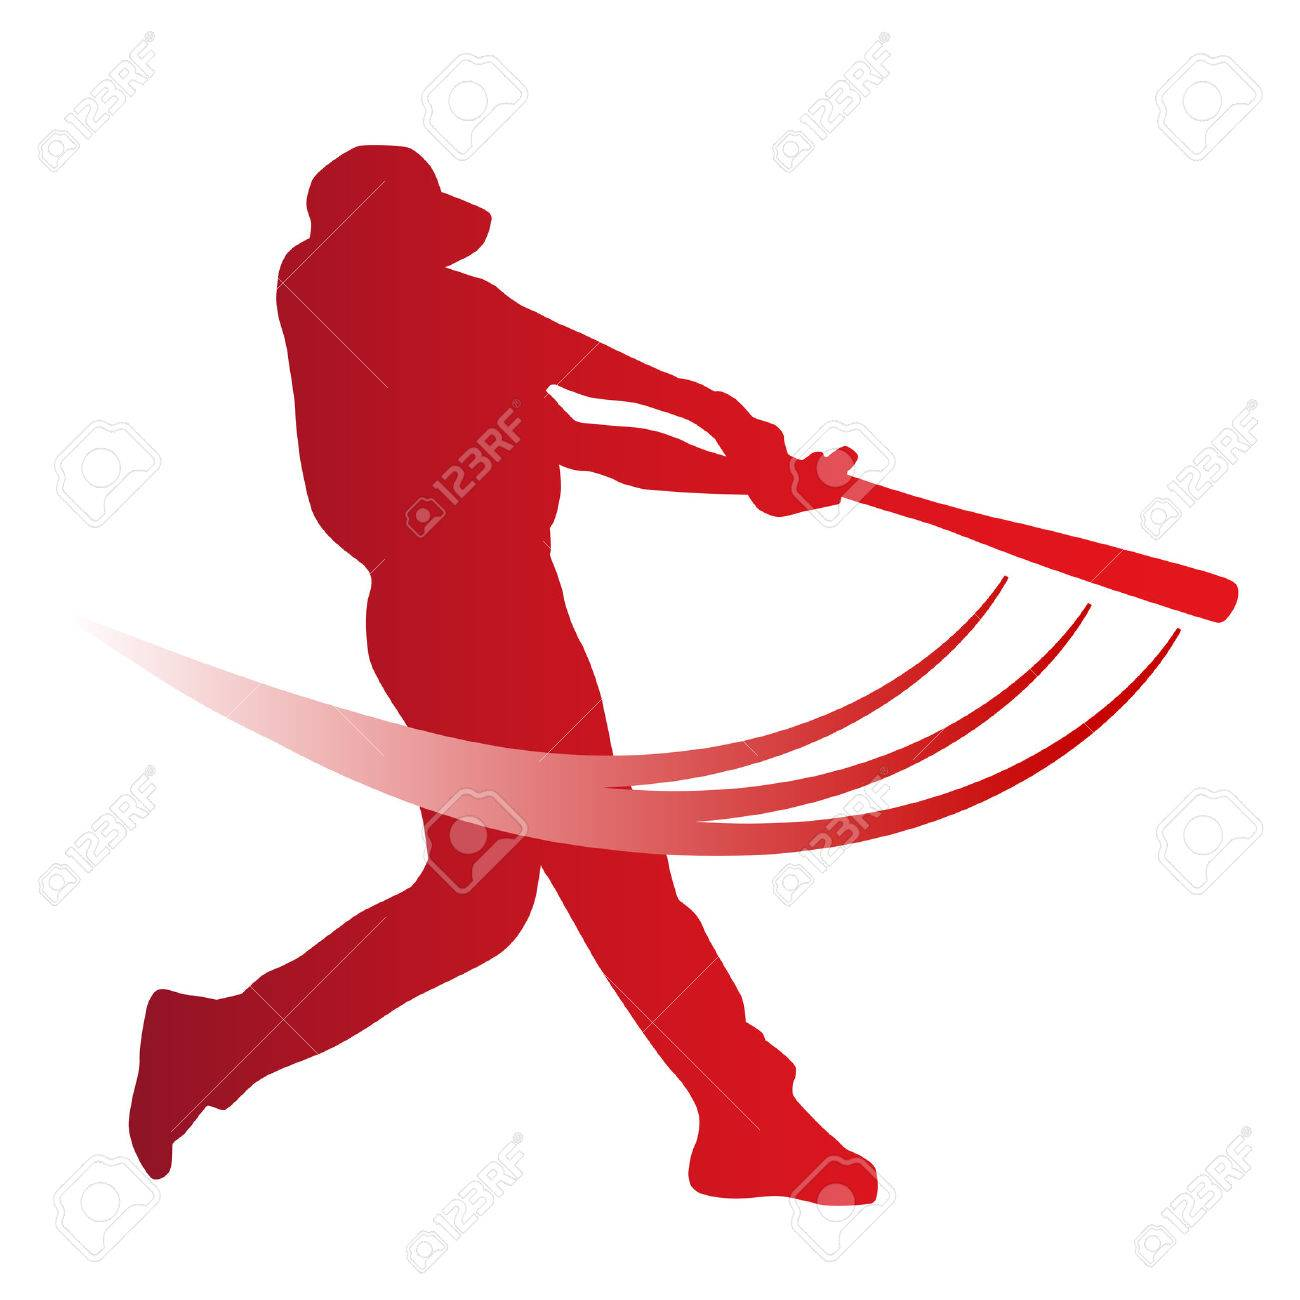 hight resolution of red vector baseball batter stock vector 43147687